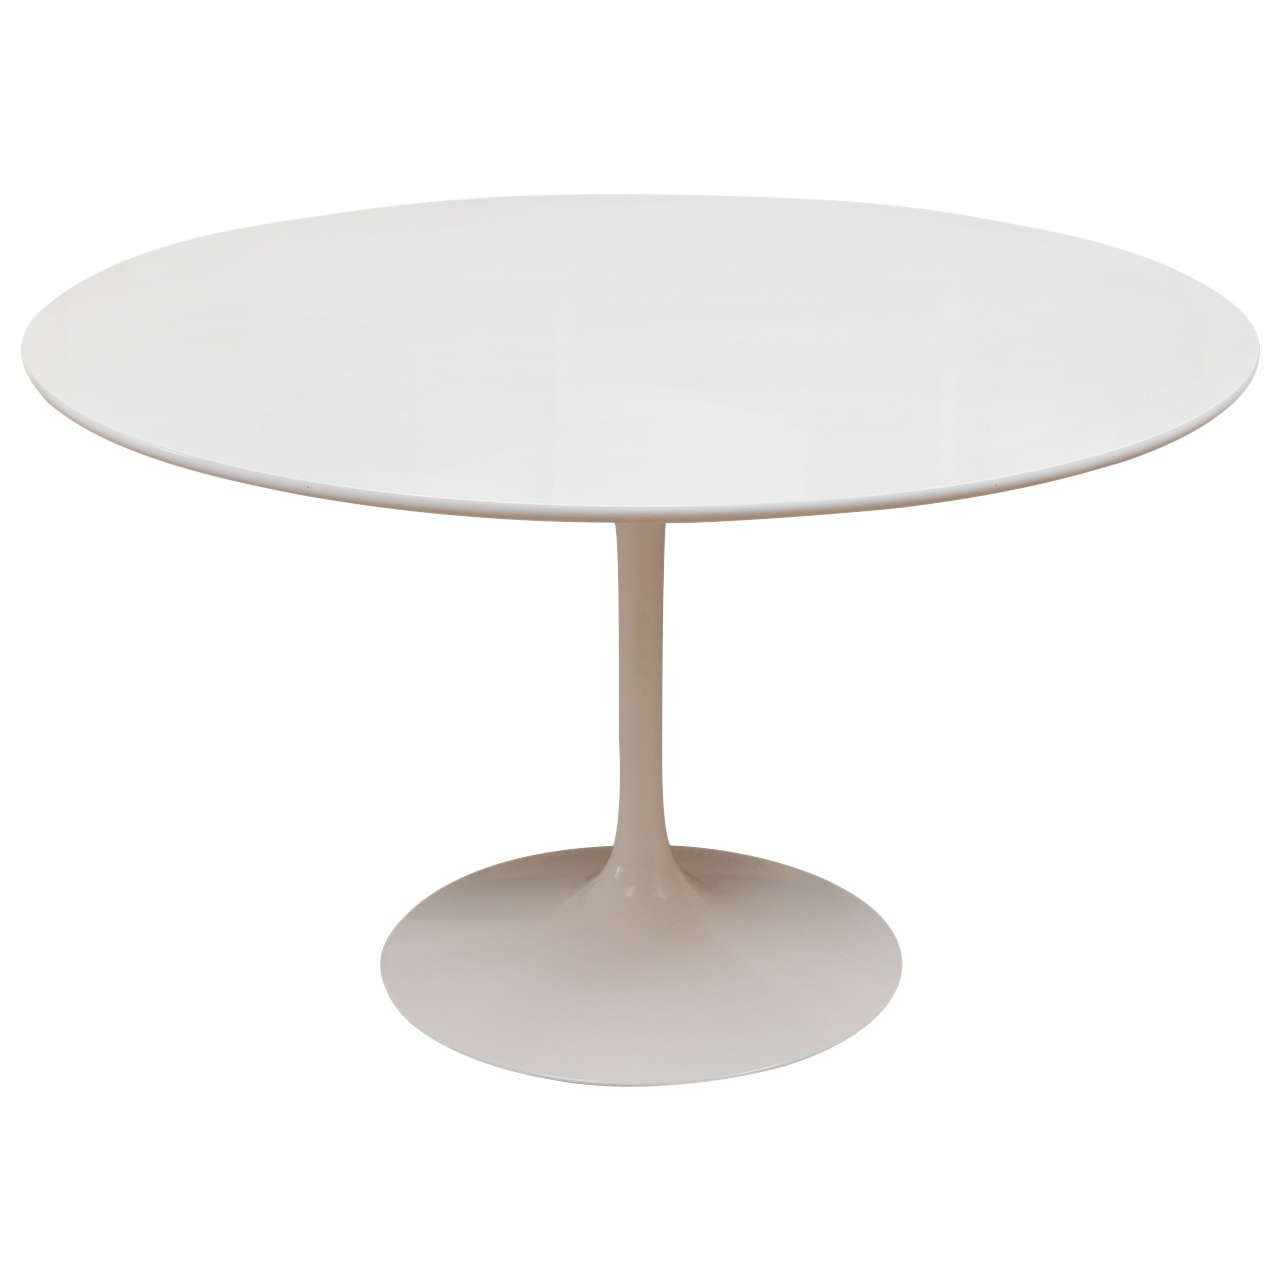 Saarinen For Knoll Tulip Dining Table At 1stdibs